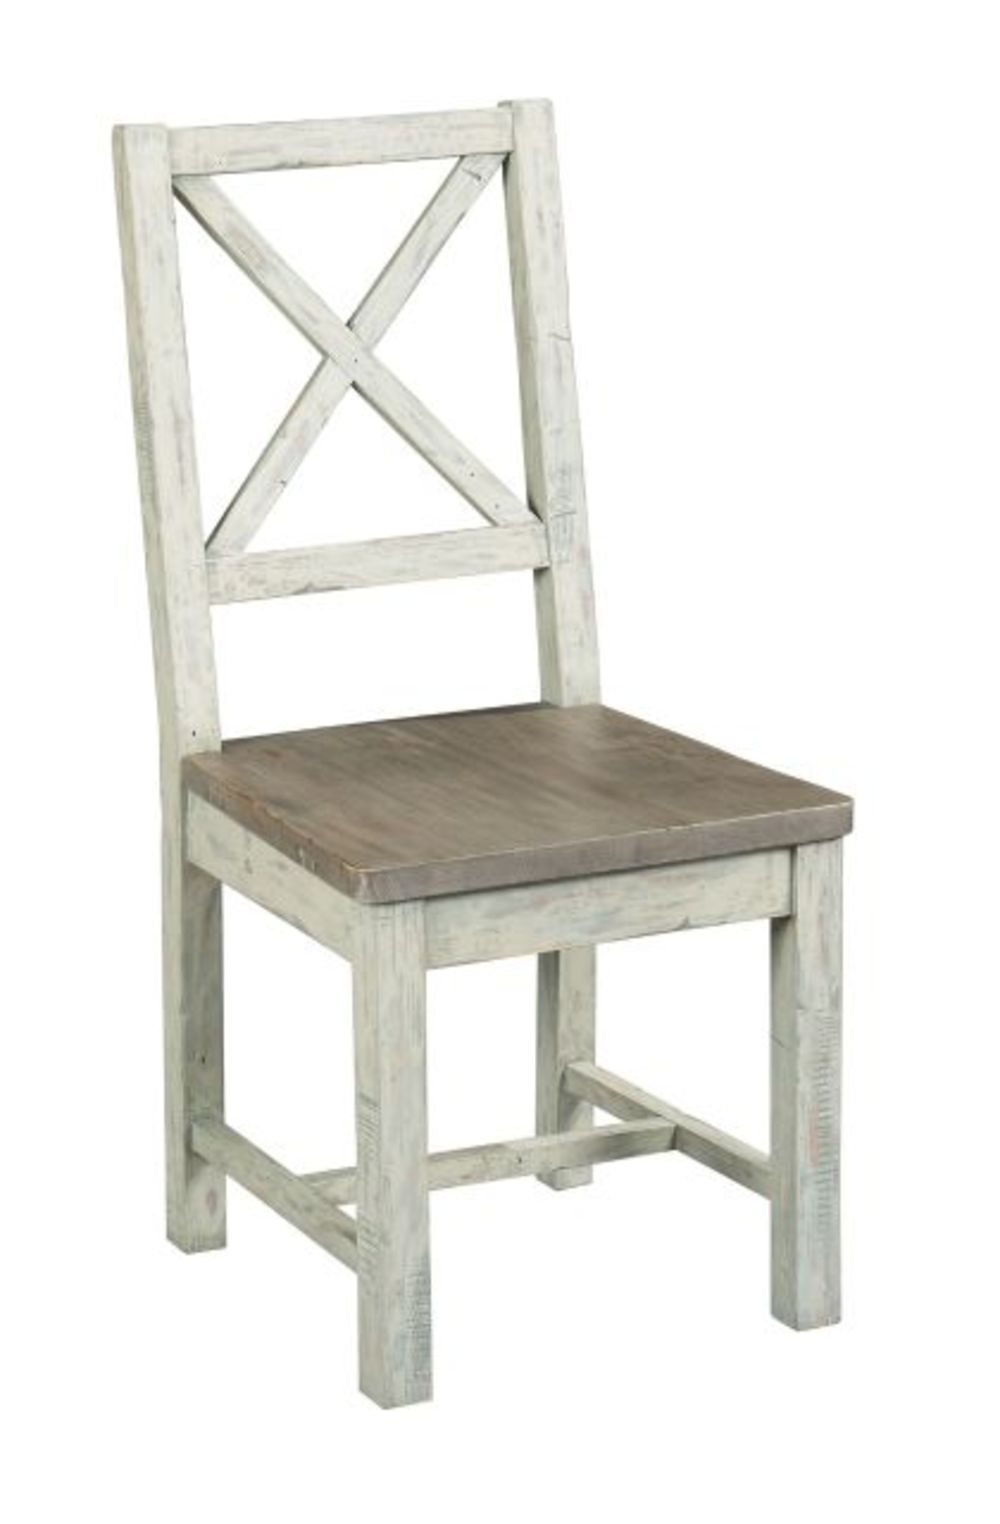 Hammary Furniture - Reclamation Place Desk Chair